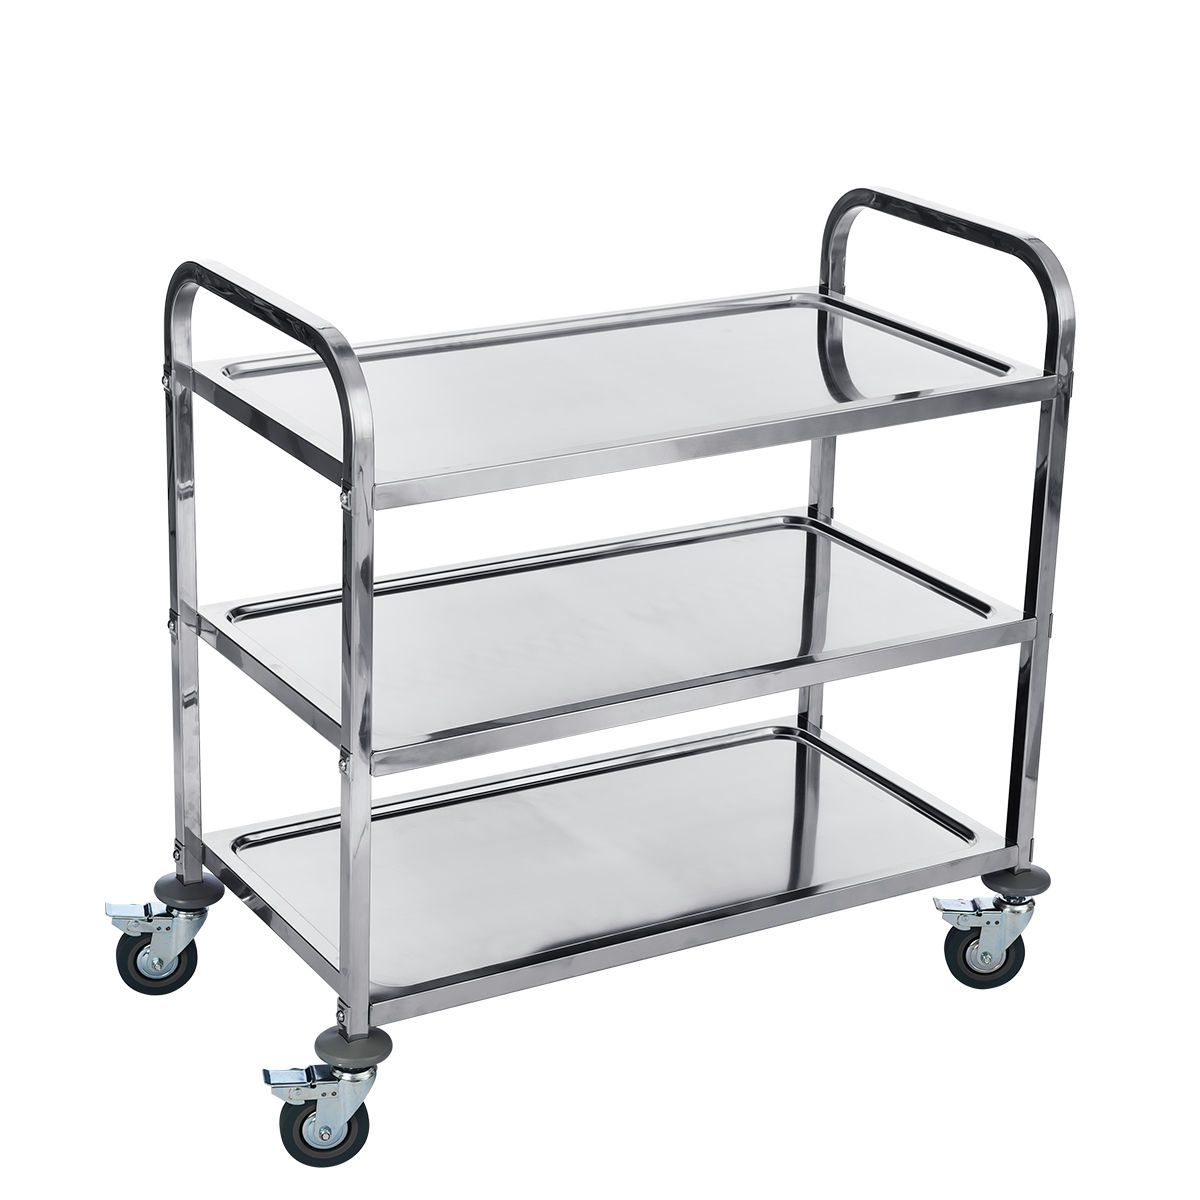 Catering Service Trolley with Wheels for Kitchen Cafes Stainless ...